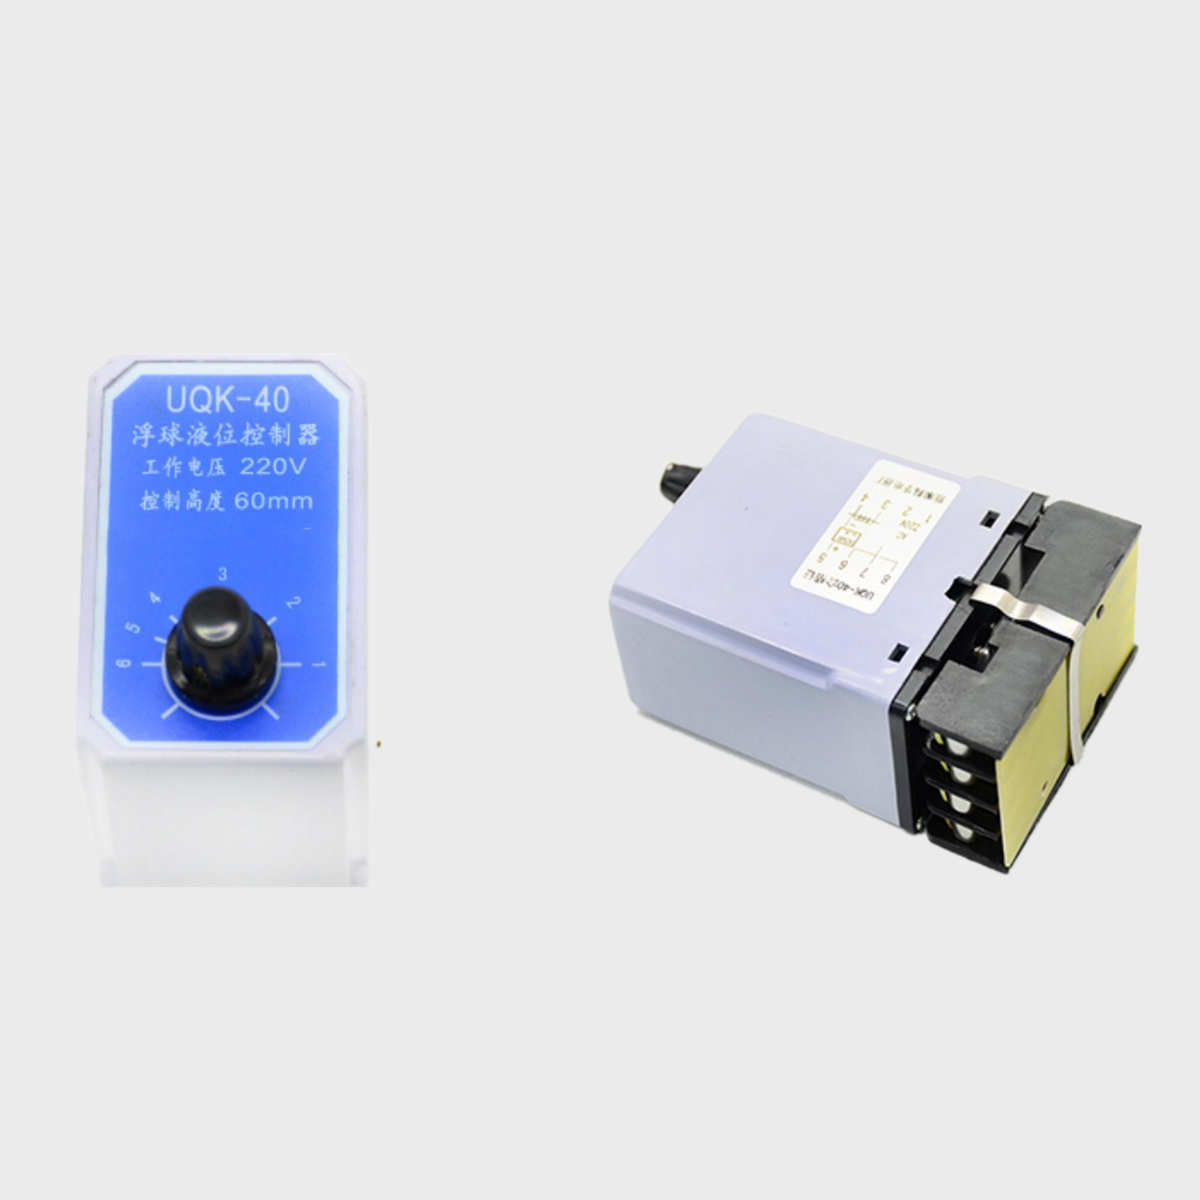 High performance automatic float level controller switch Manufacturers, High performance automatic float level controller switch Factory, Supply High performance automatic float level controller switch